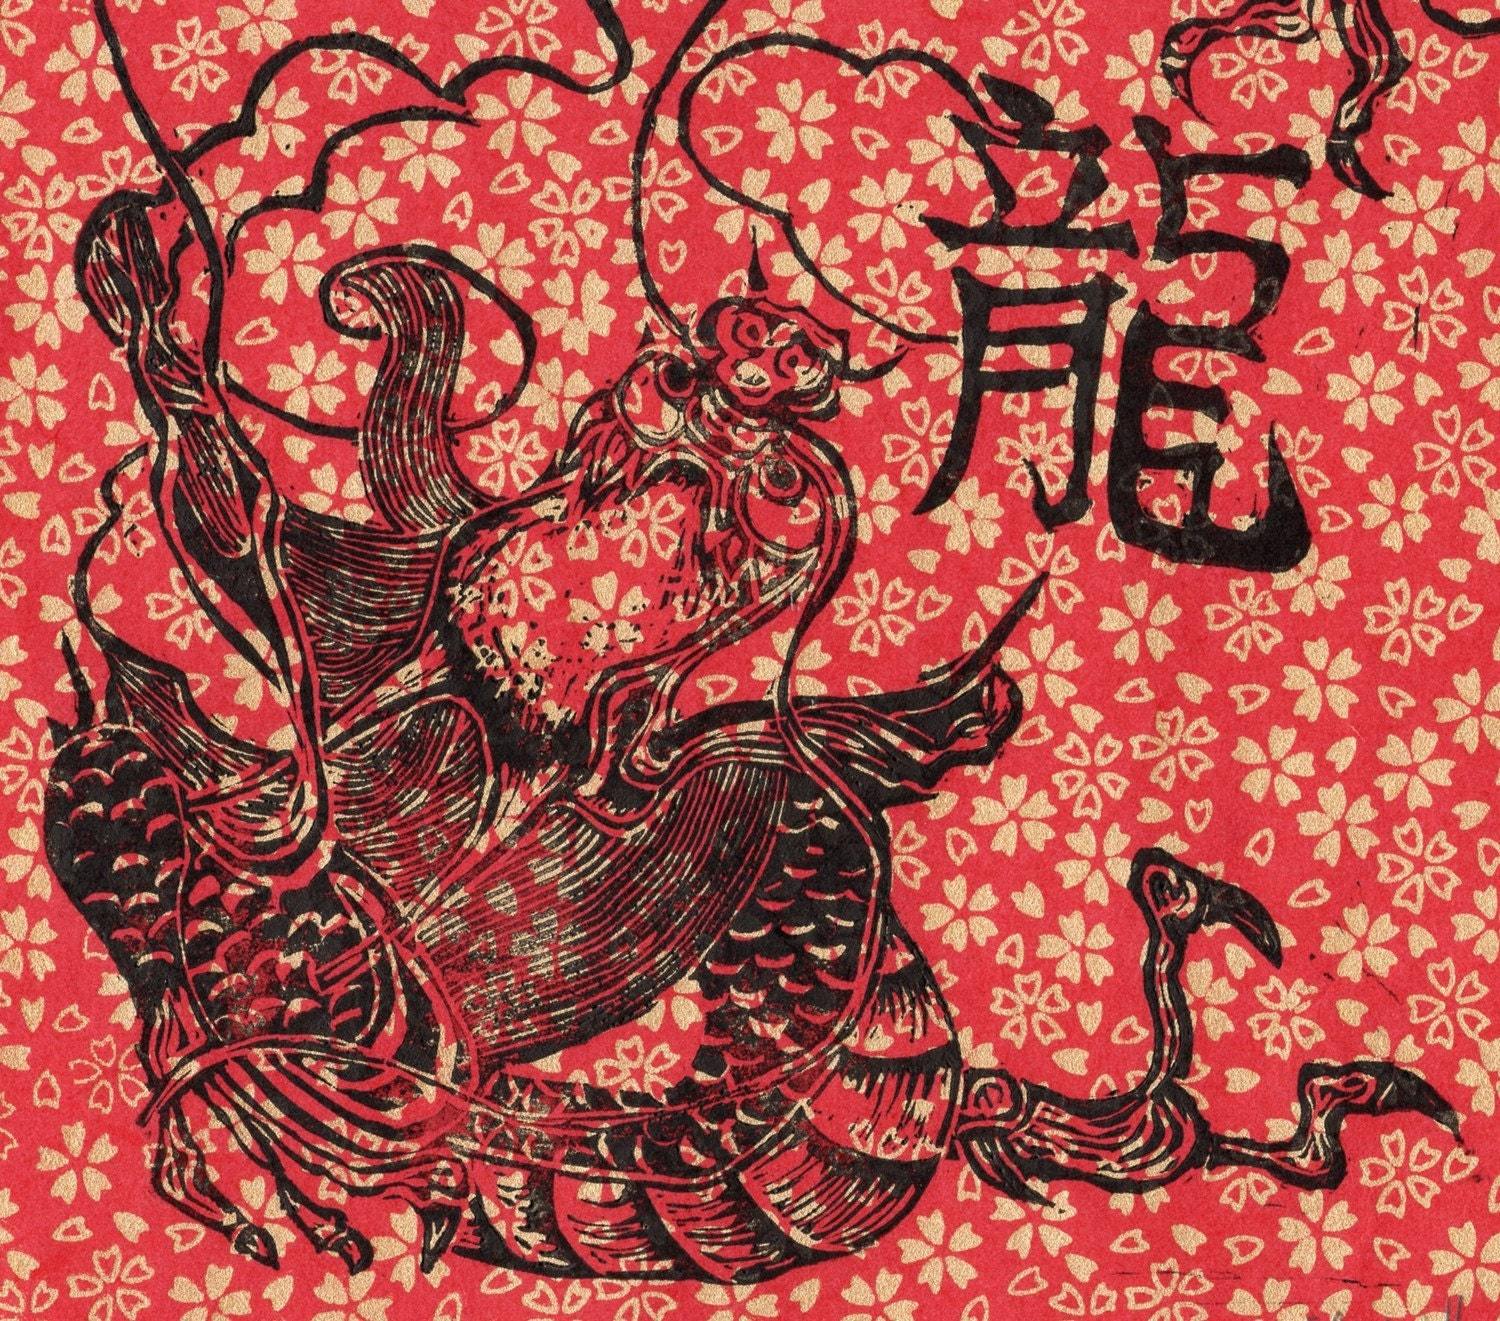 chinese dragon lino block print in red black and gold